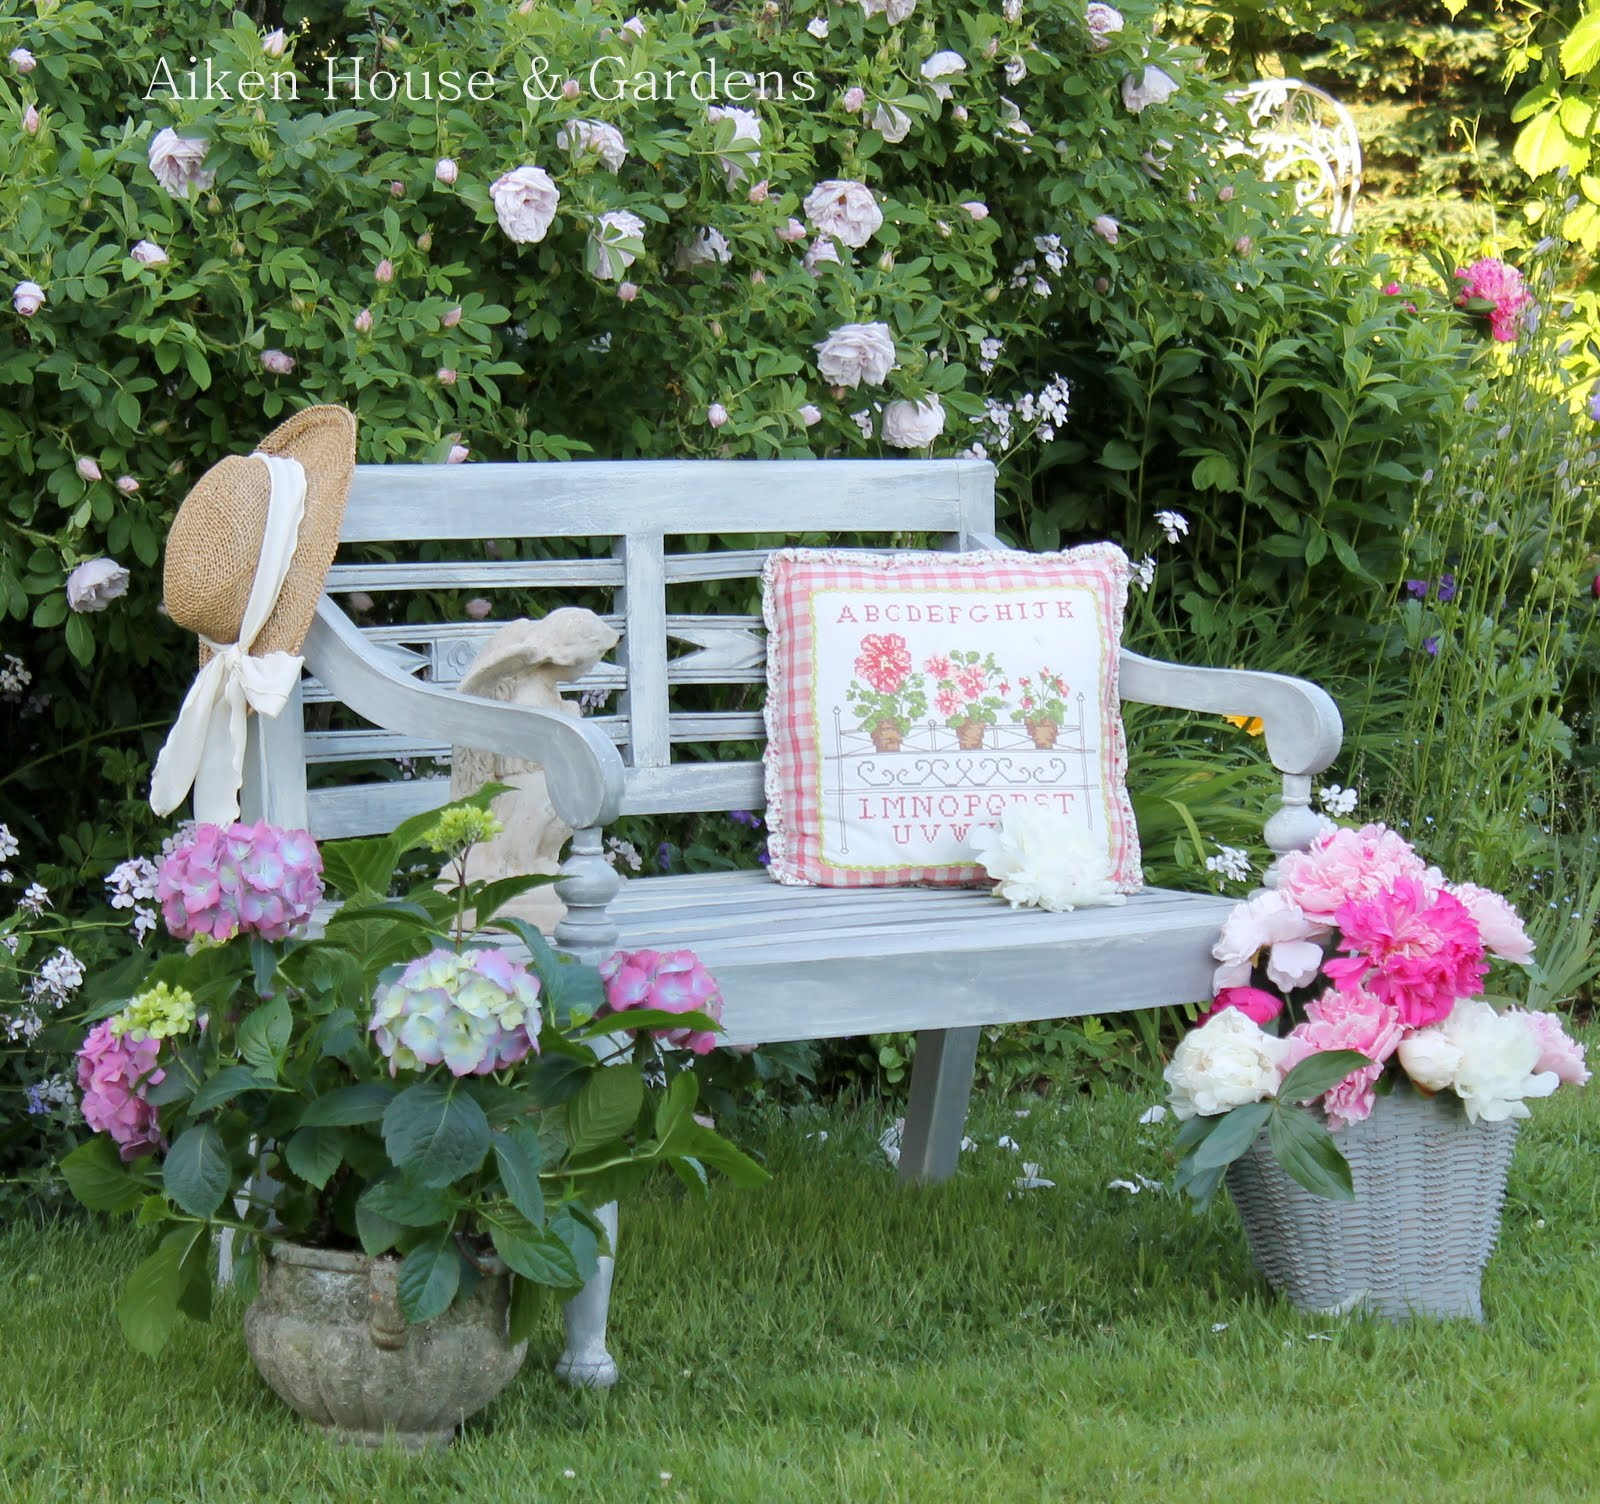 home improvement ideas the garden bench. Black Bedroom Furniture Sets. Home Design Ideas